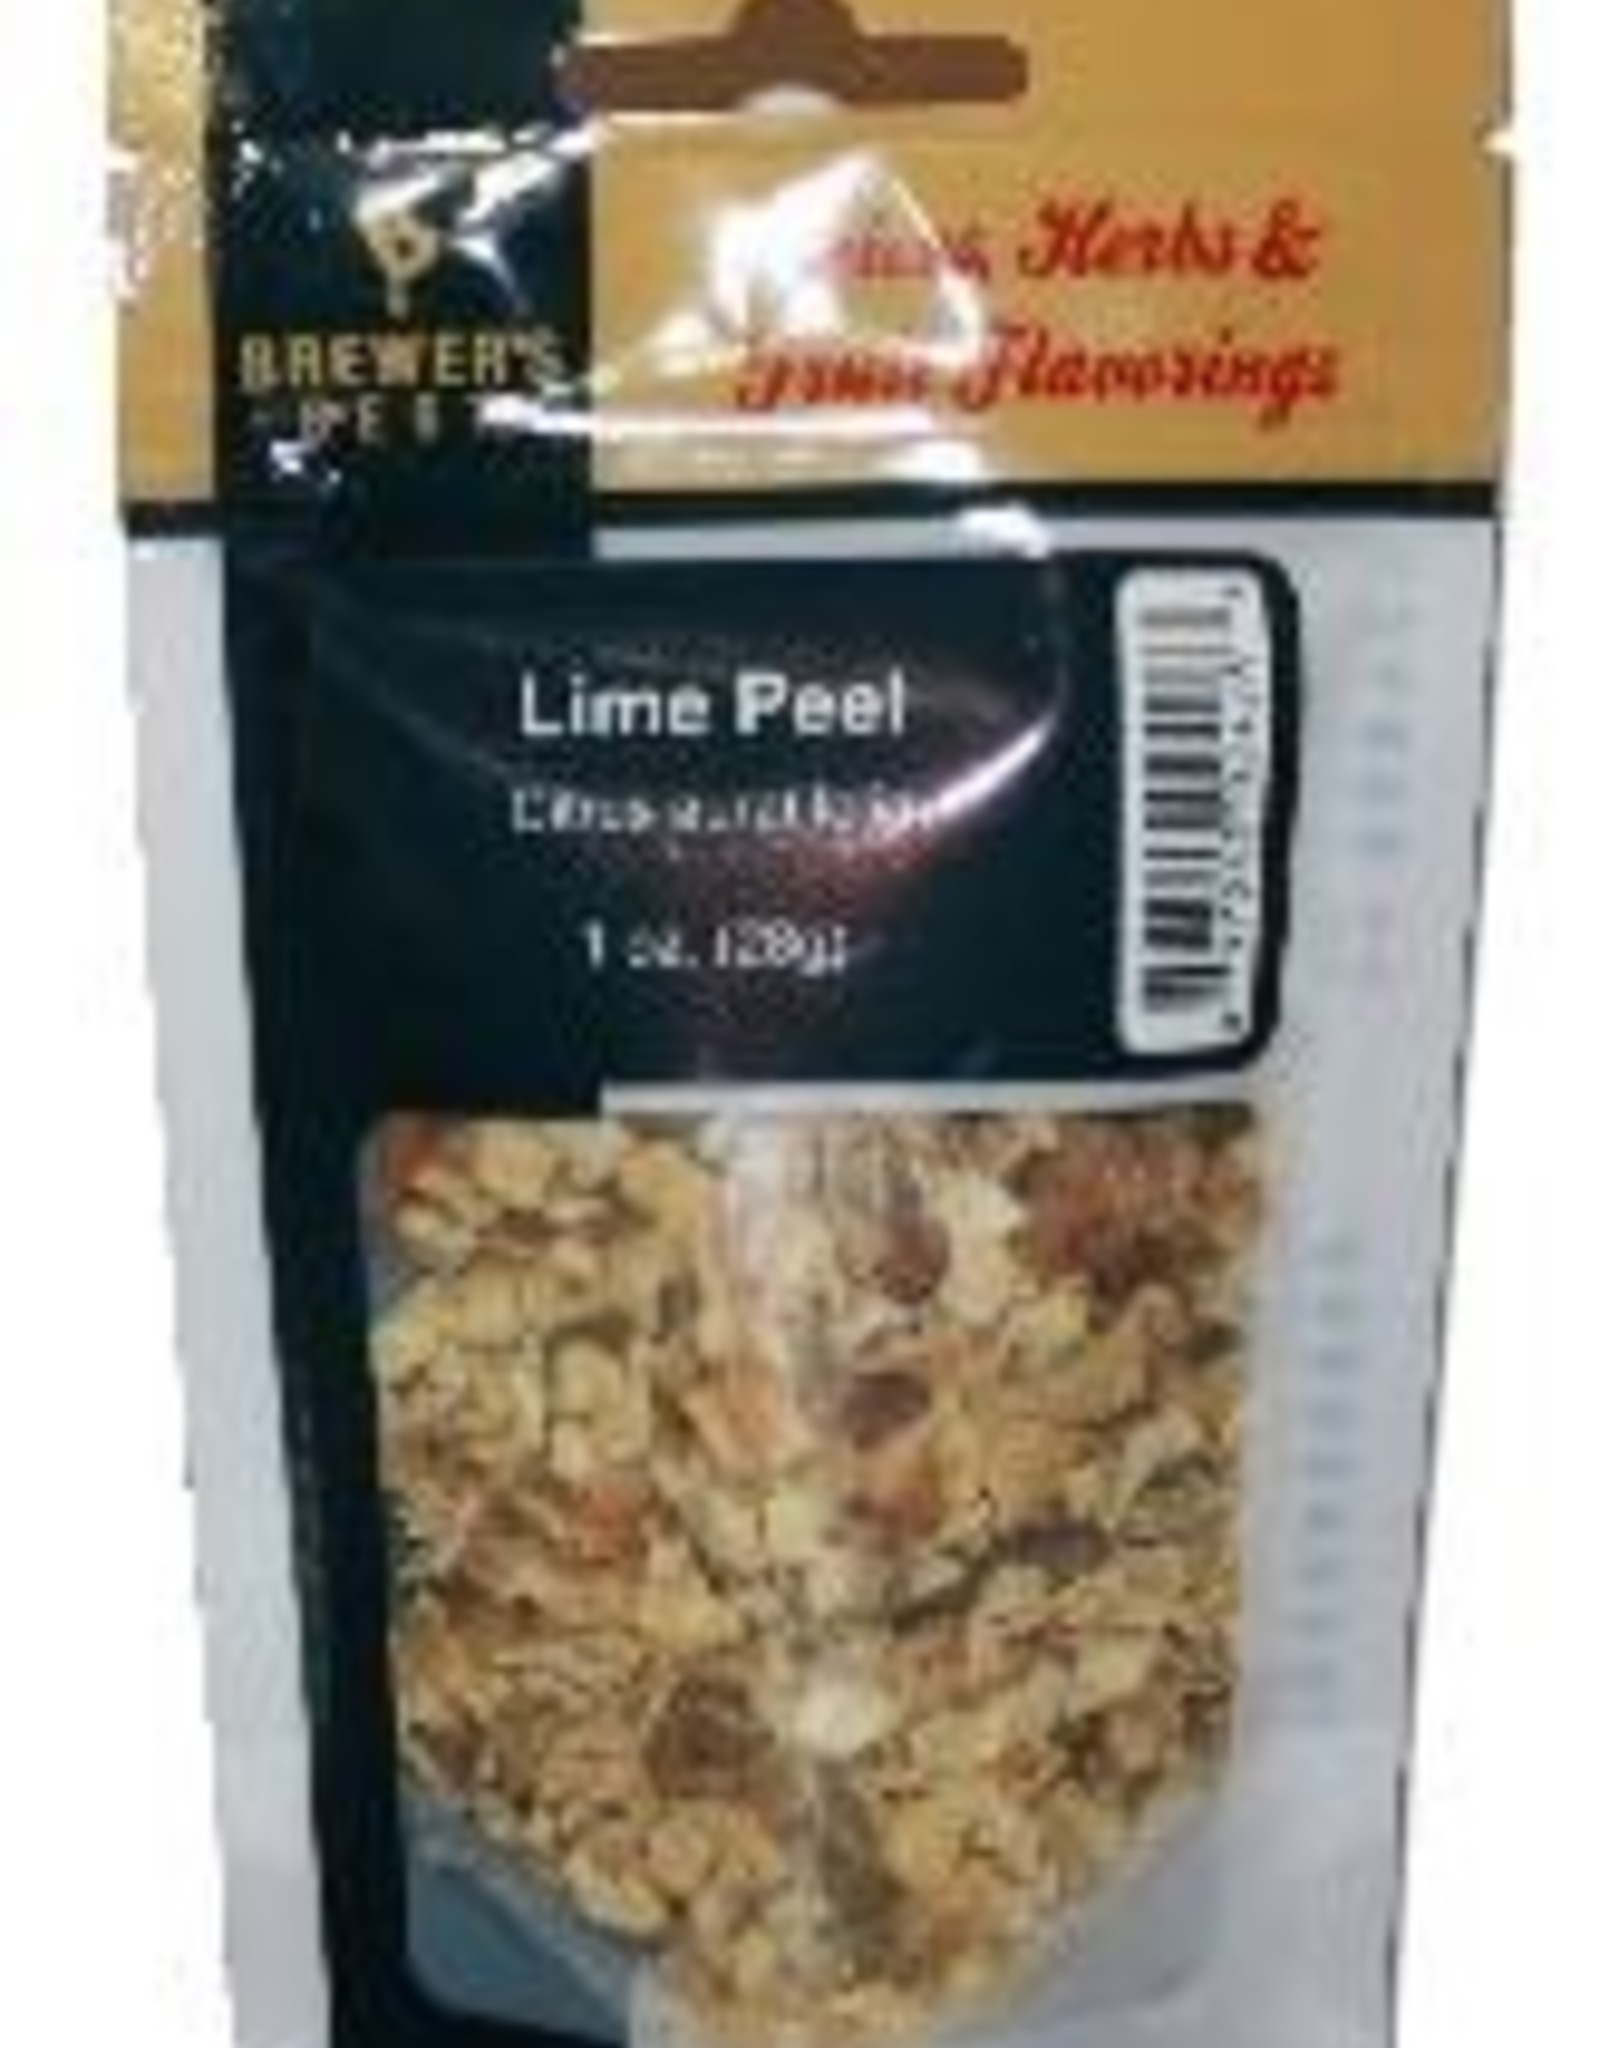 BREWERS BEST BREWER'S BEST® LIME PEEL 1 OZ